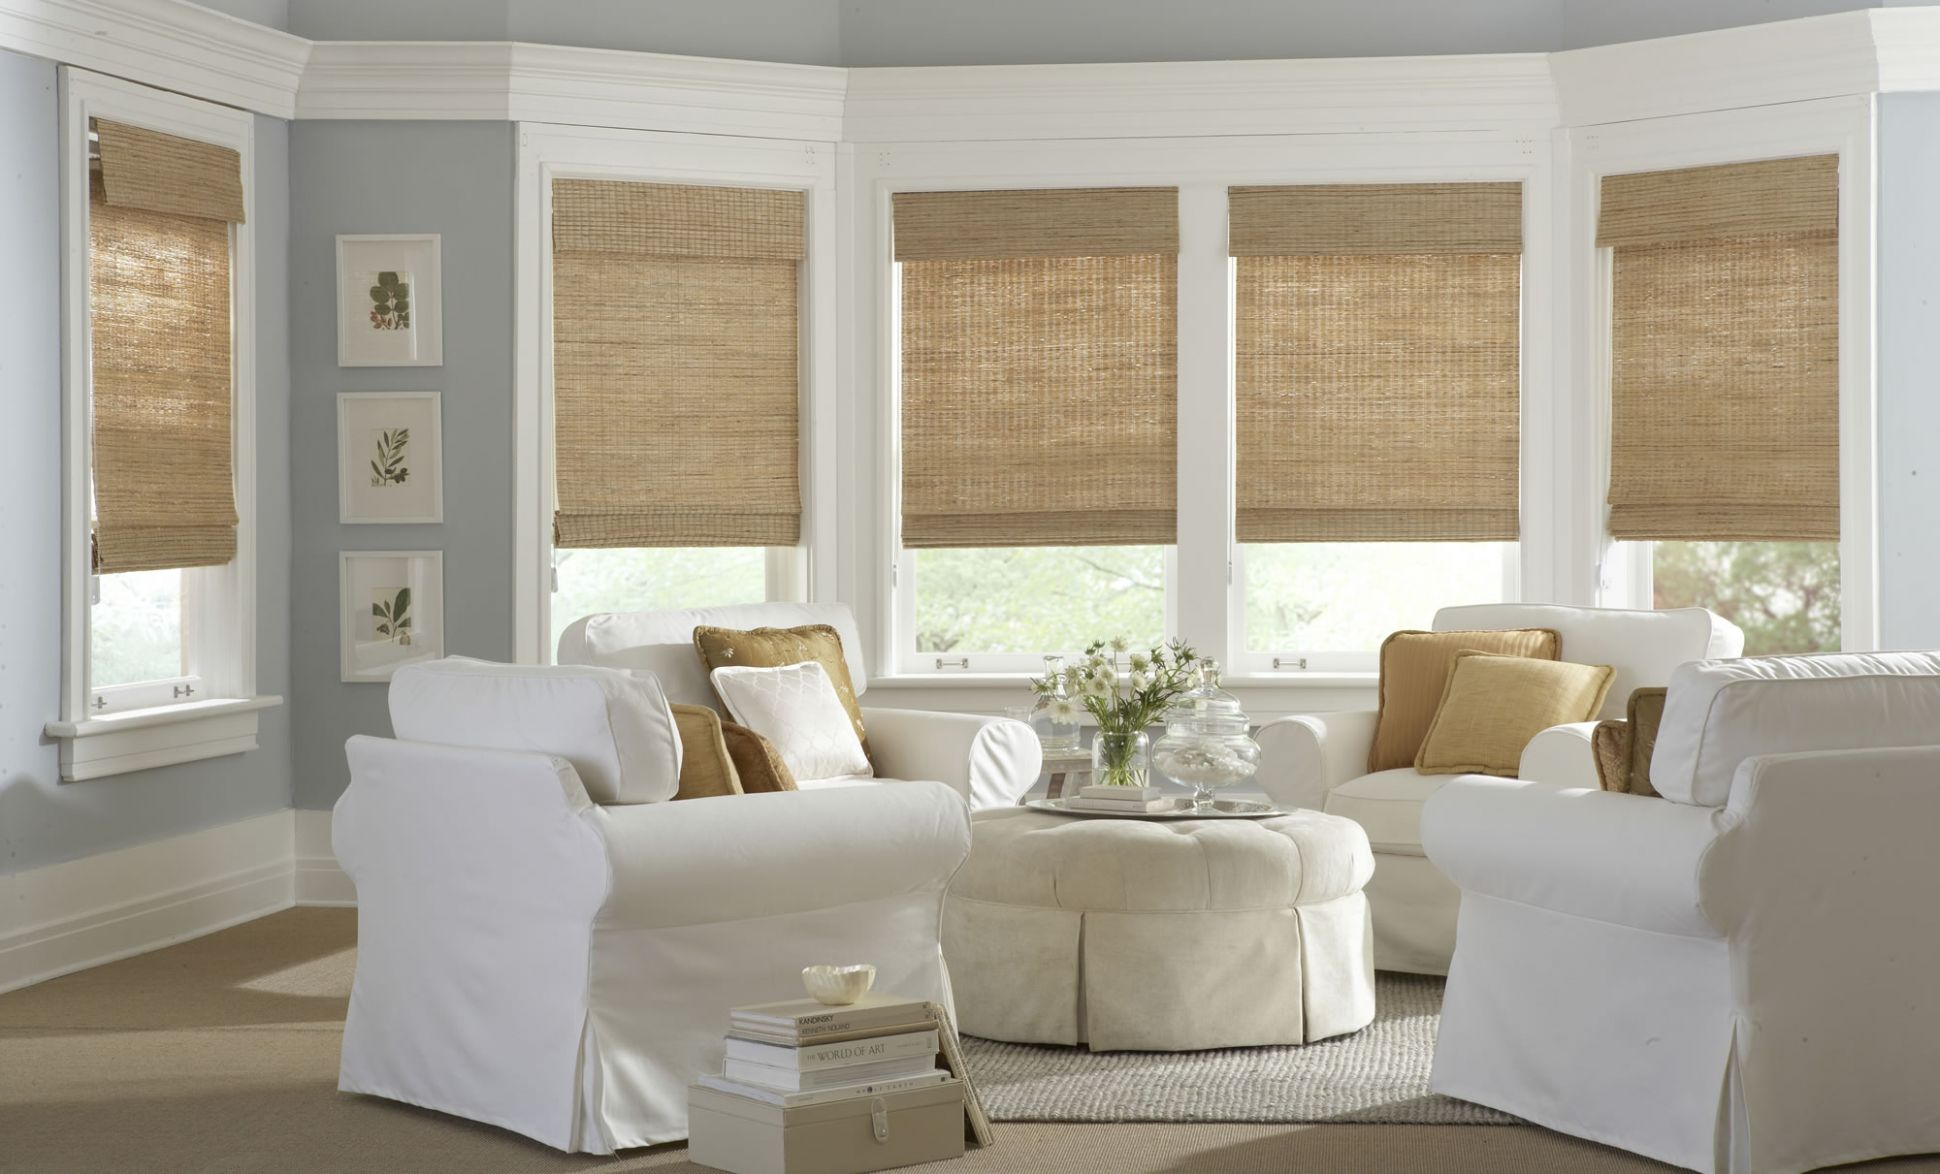 Bamboo window treatments for your home - Interior Design Explained - window shade ideas for your home